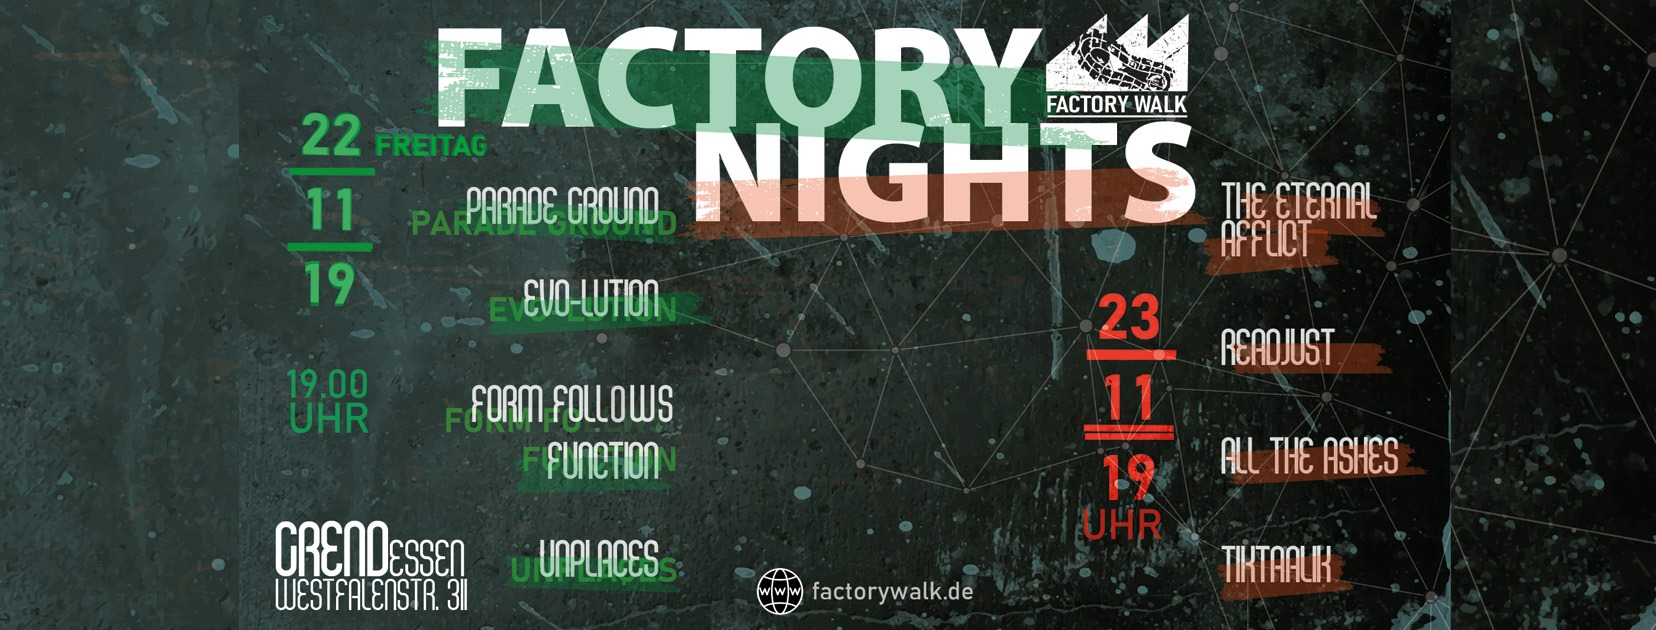 factory nights festival